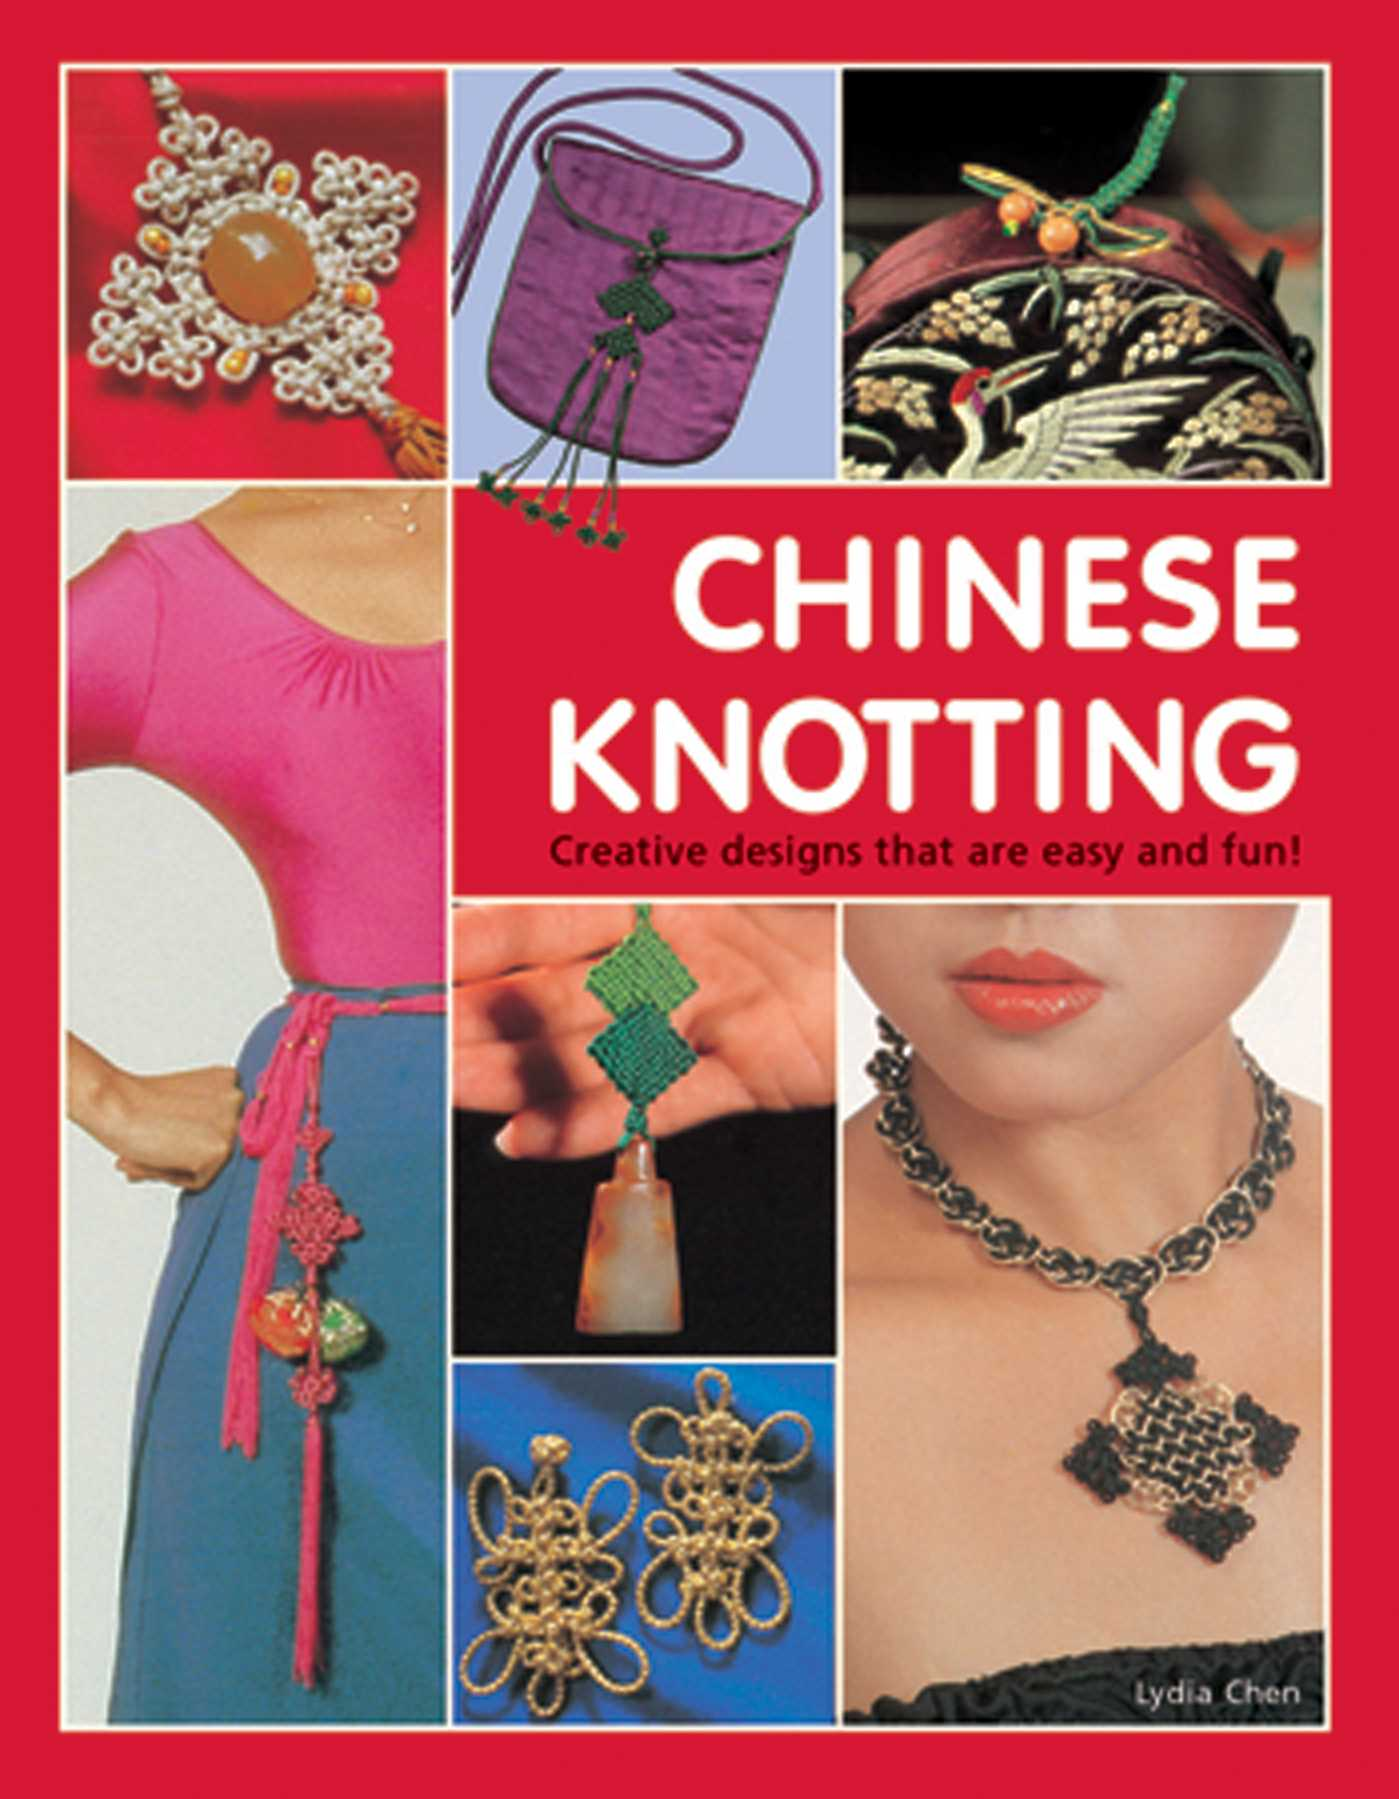 Chinese knotting 9780804848756 hr